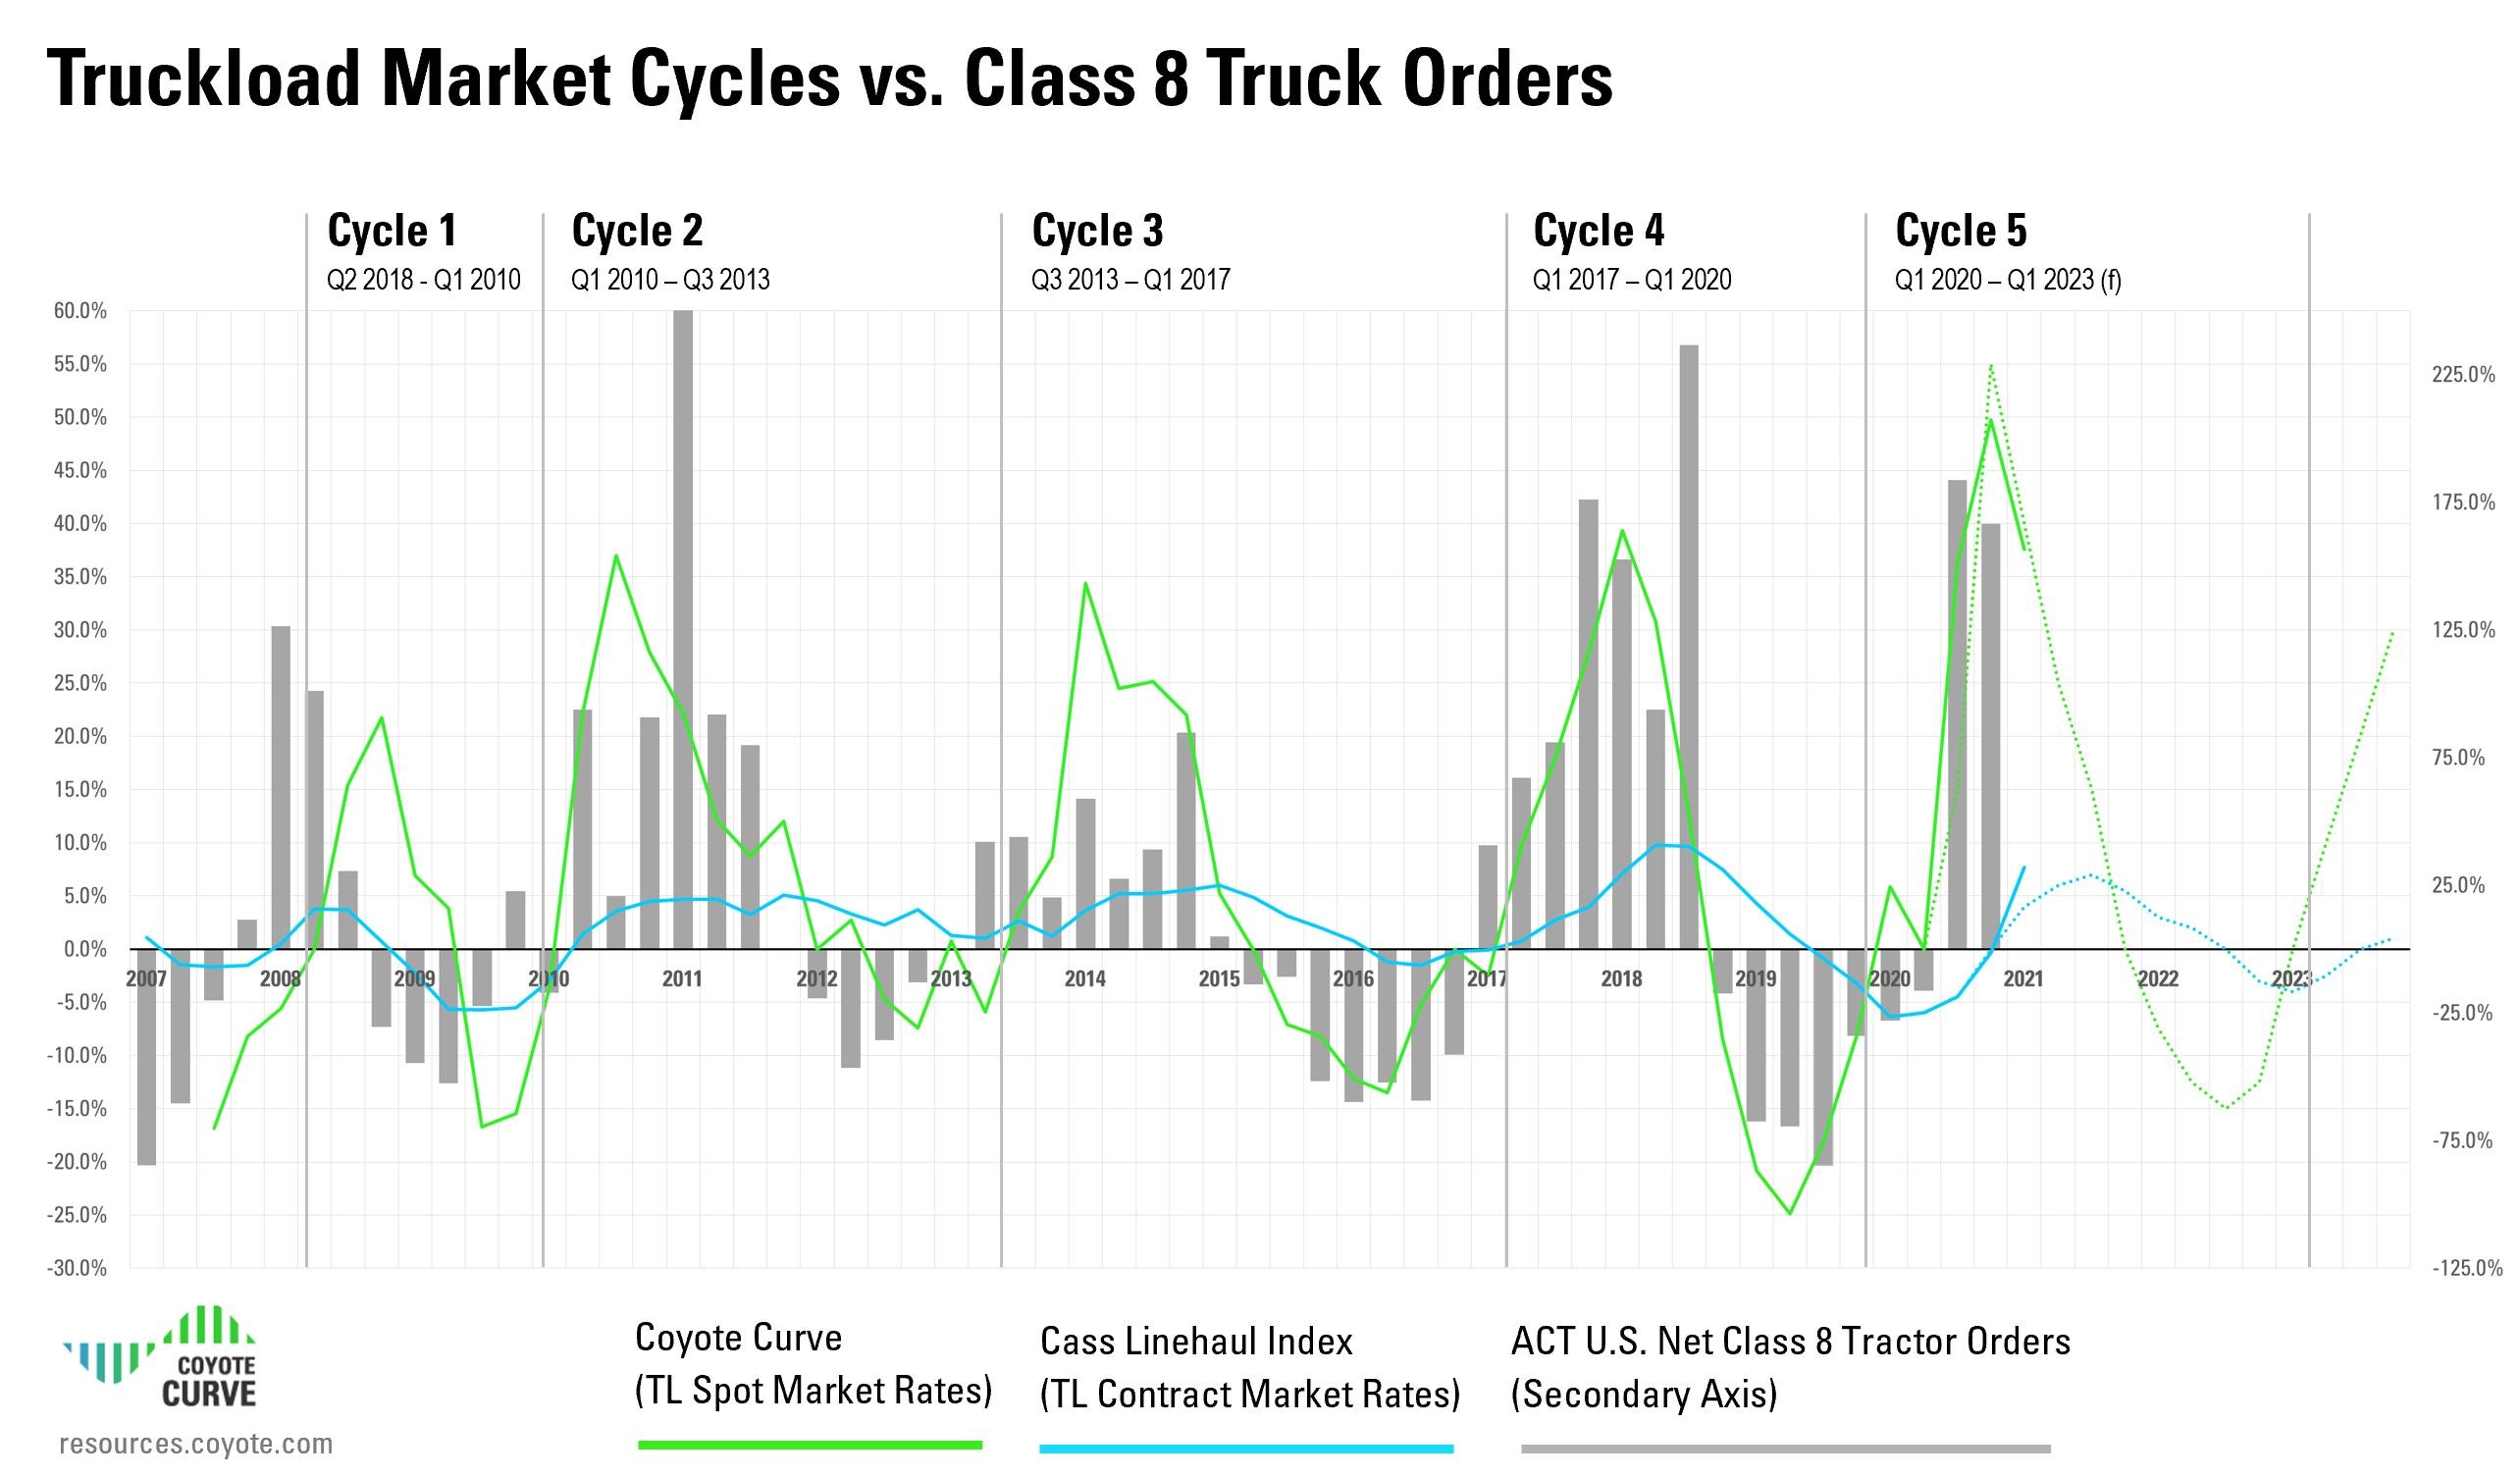 Q1 2021 Class 8 Truck orders vs. truckload market cycles